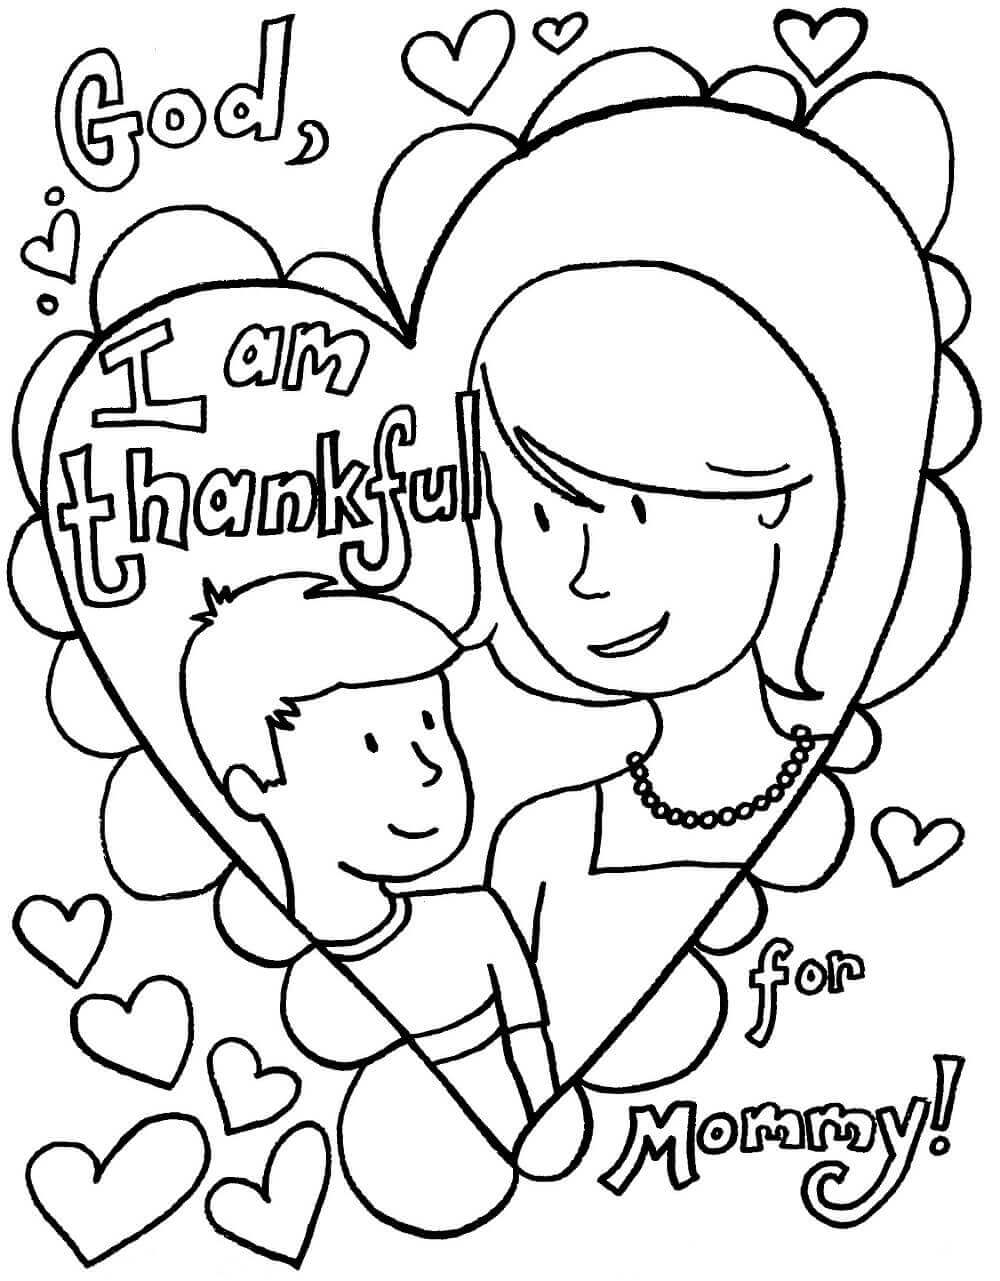 Love Valentines Day coloring pages